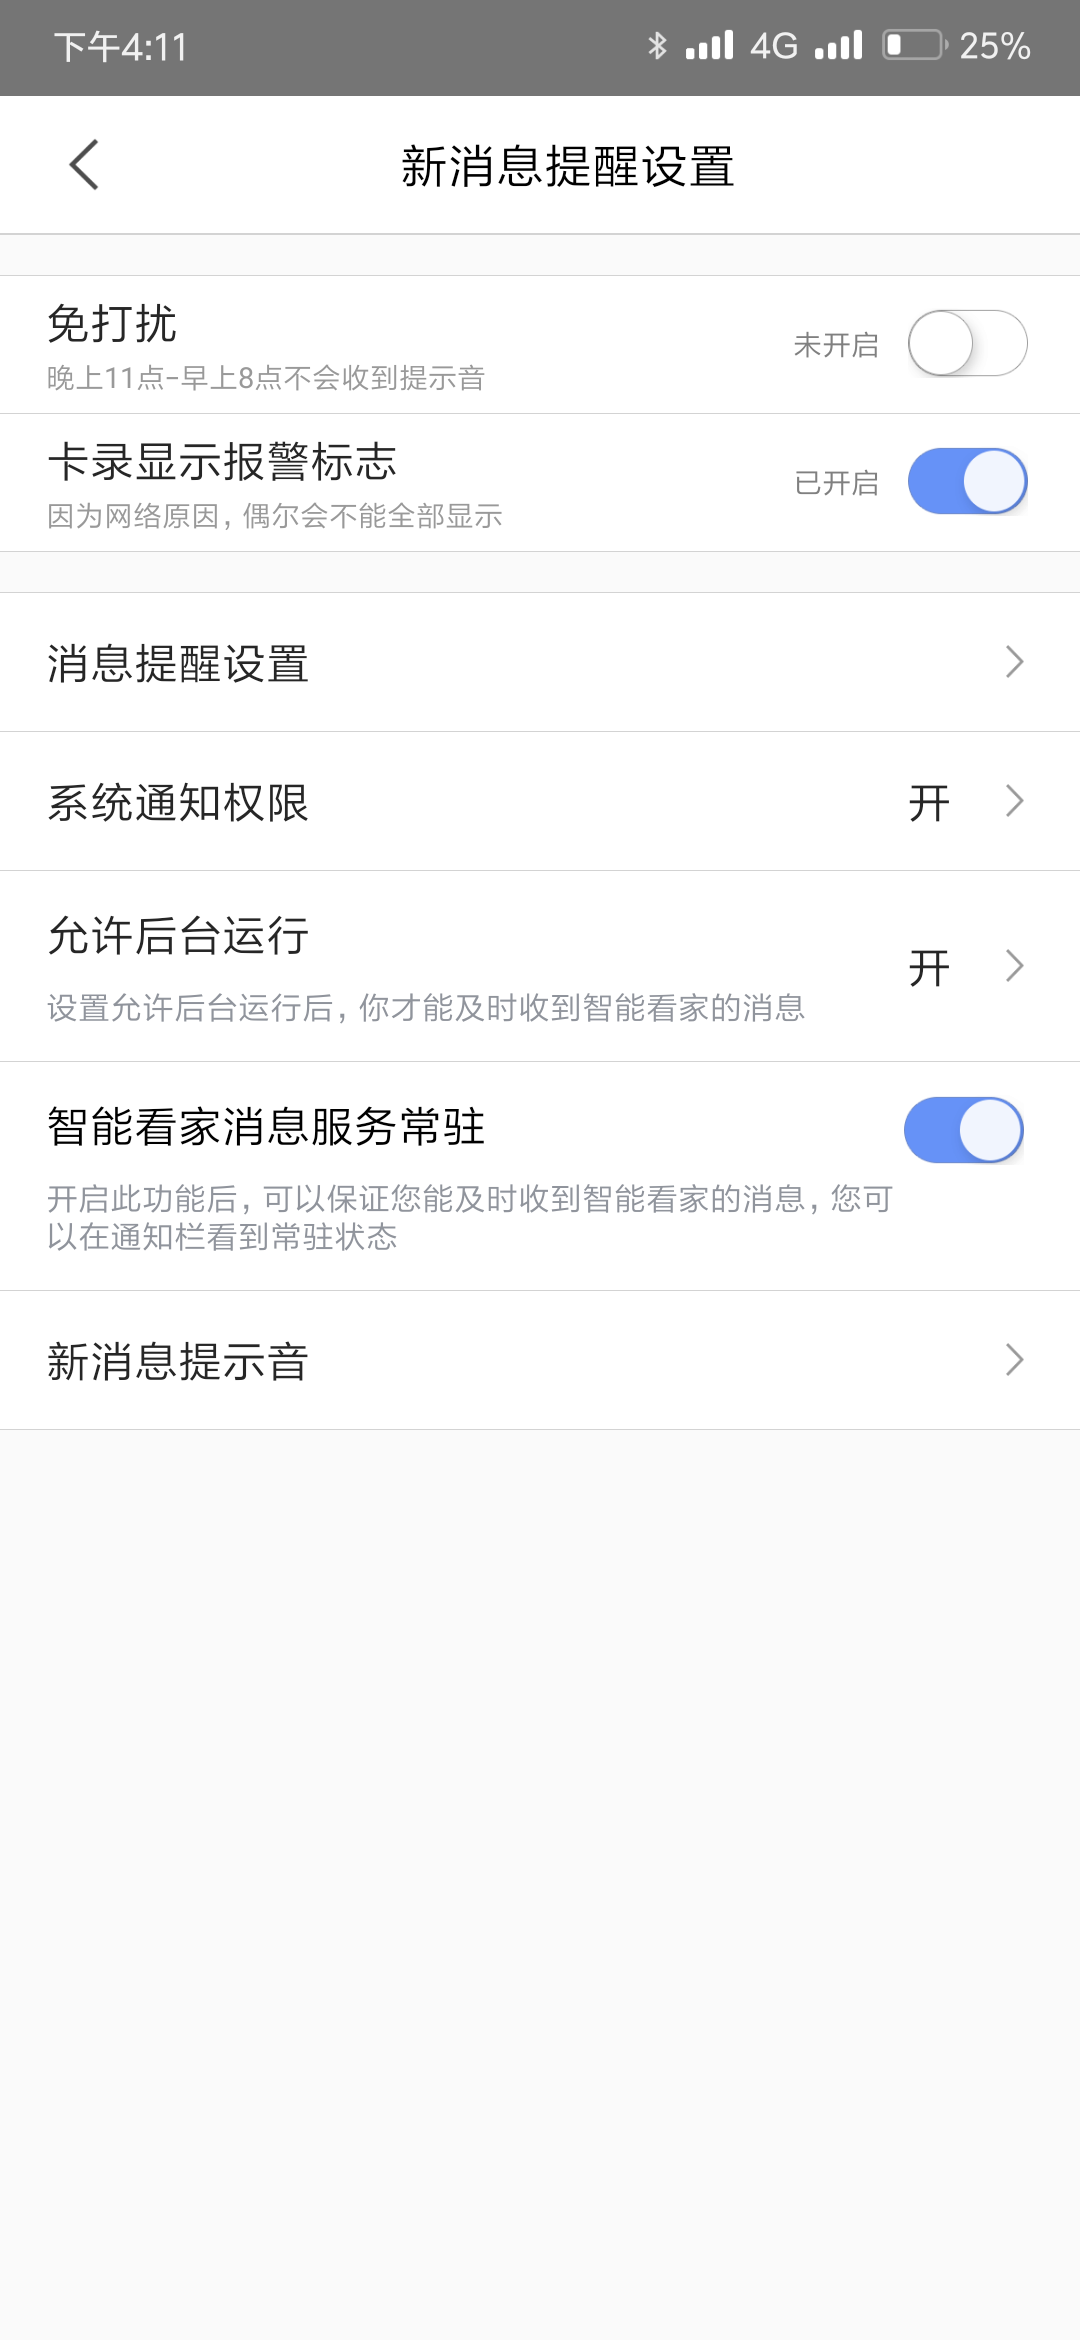 Screenshot_2018-12-27-16-11-59-904_com.qihoo.camera.png